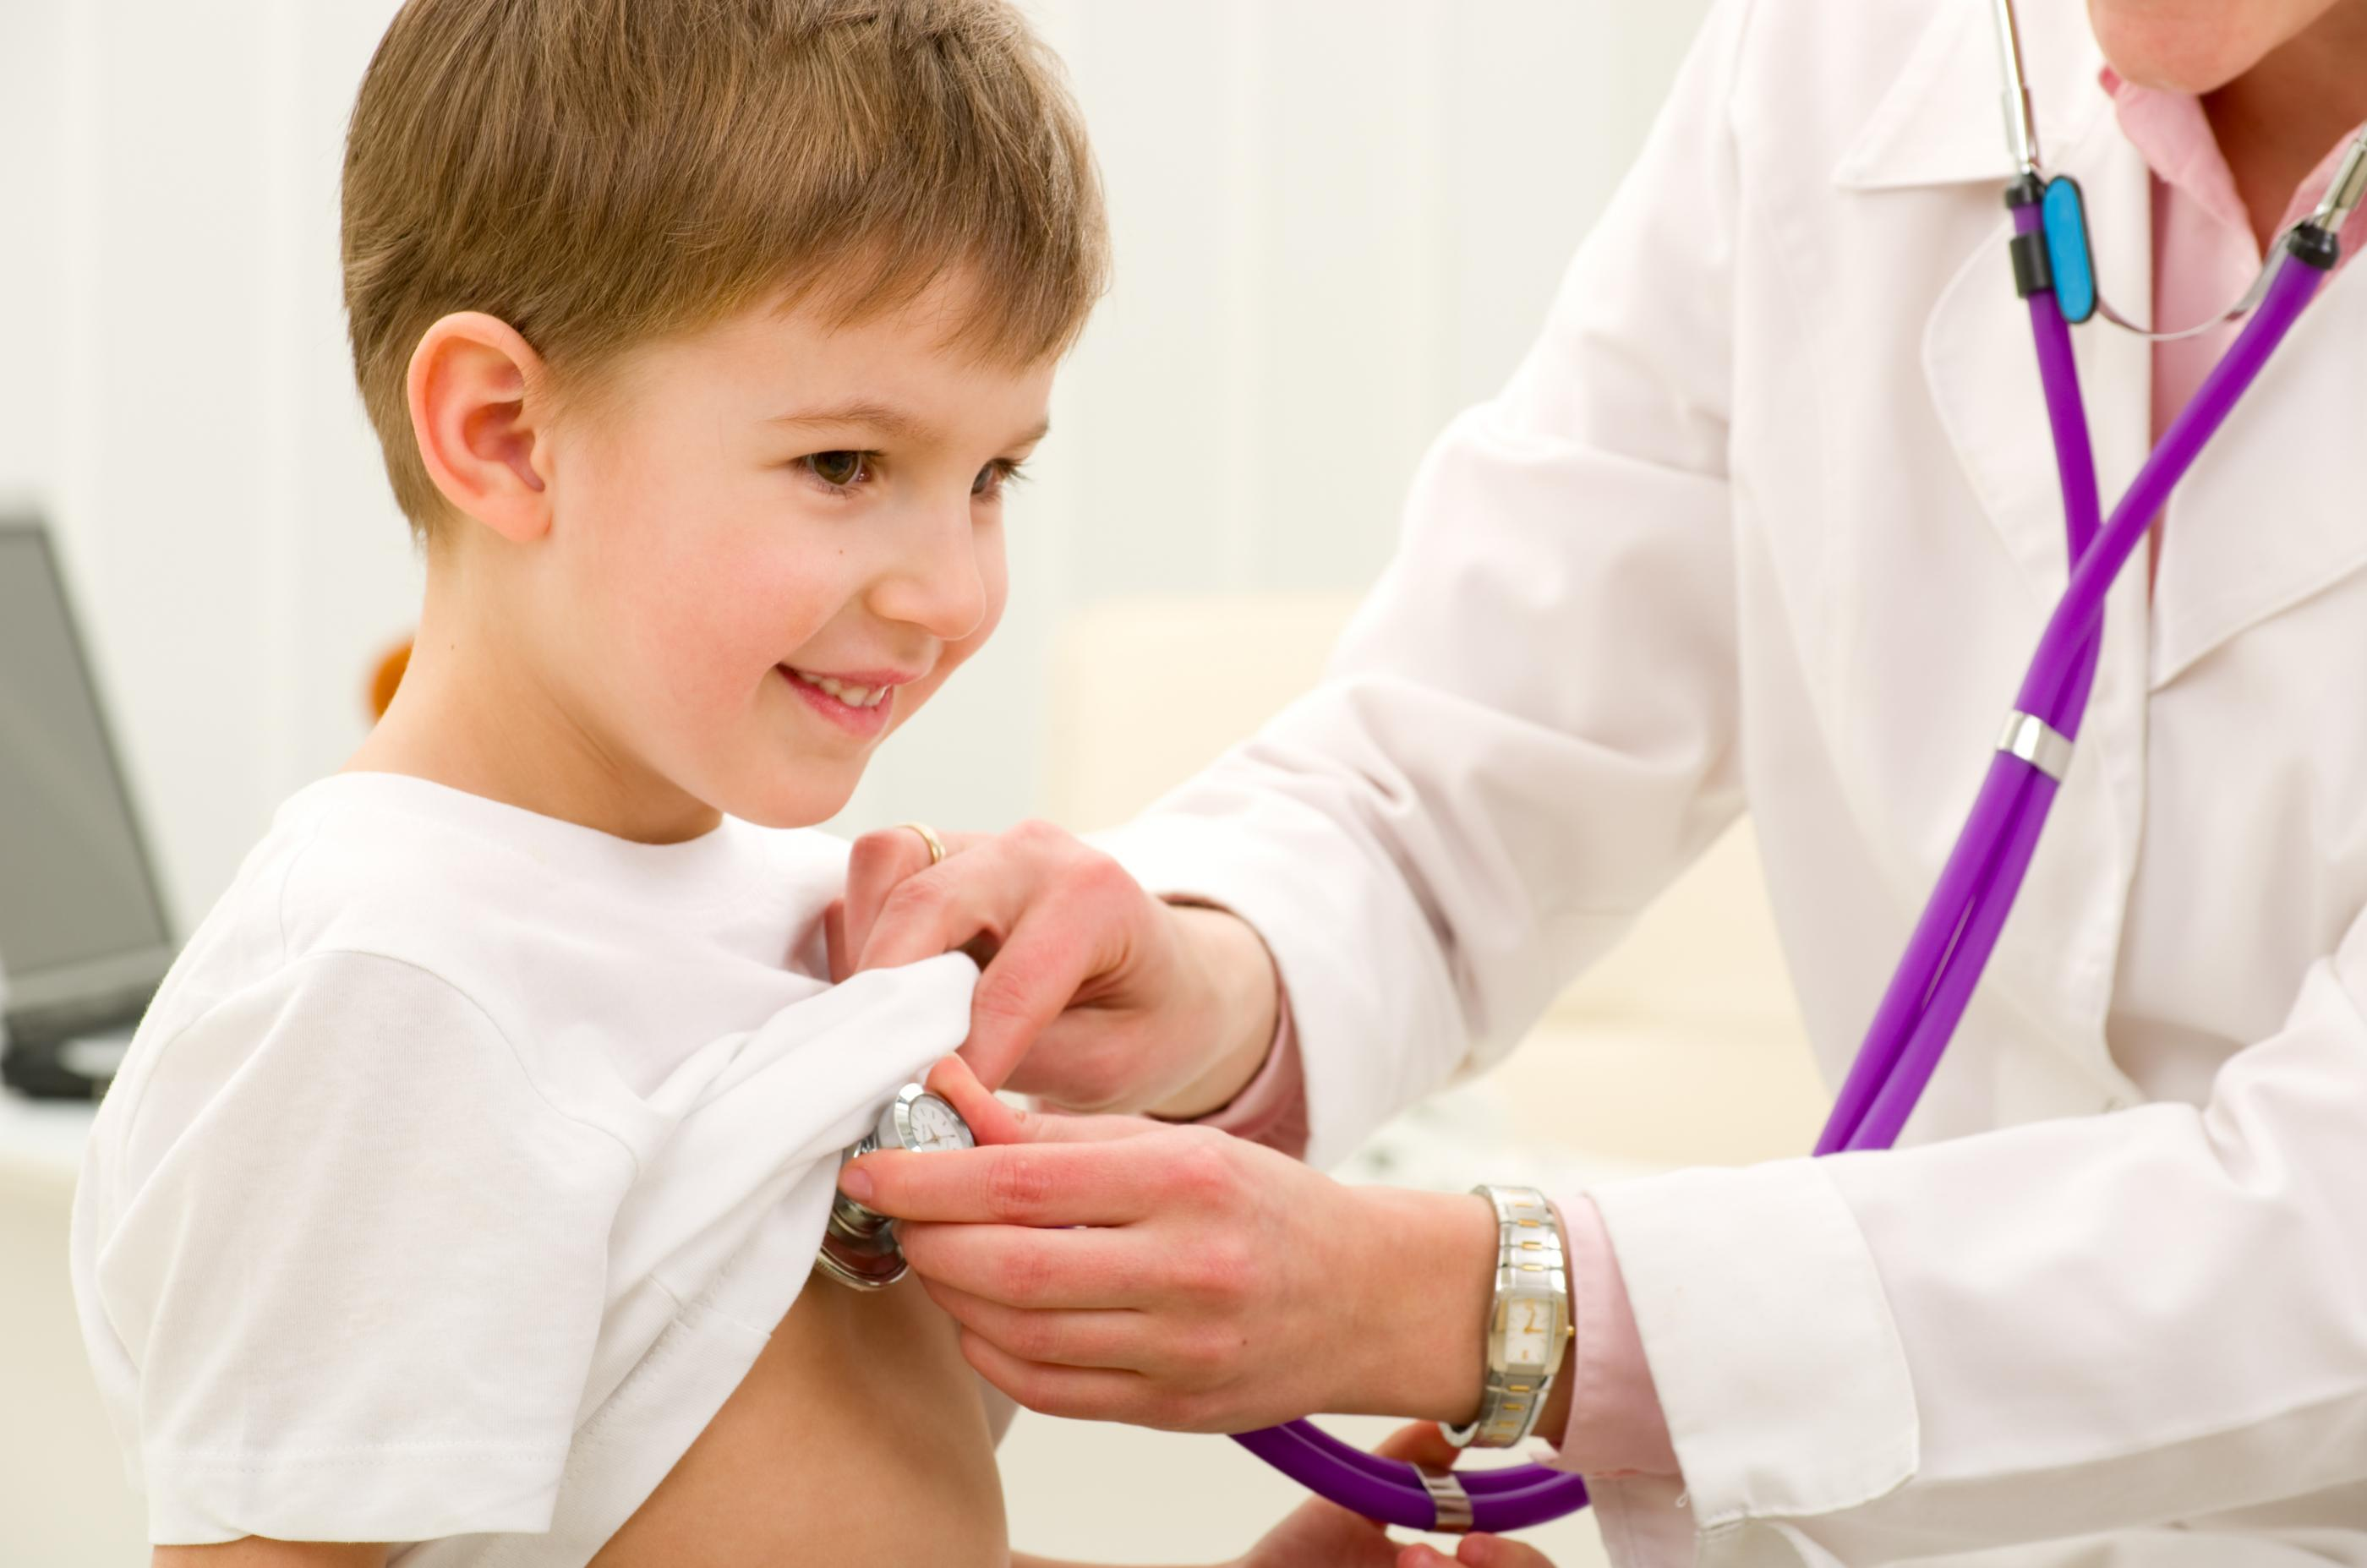 Helping Your Child Deal With Colds